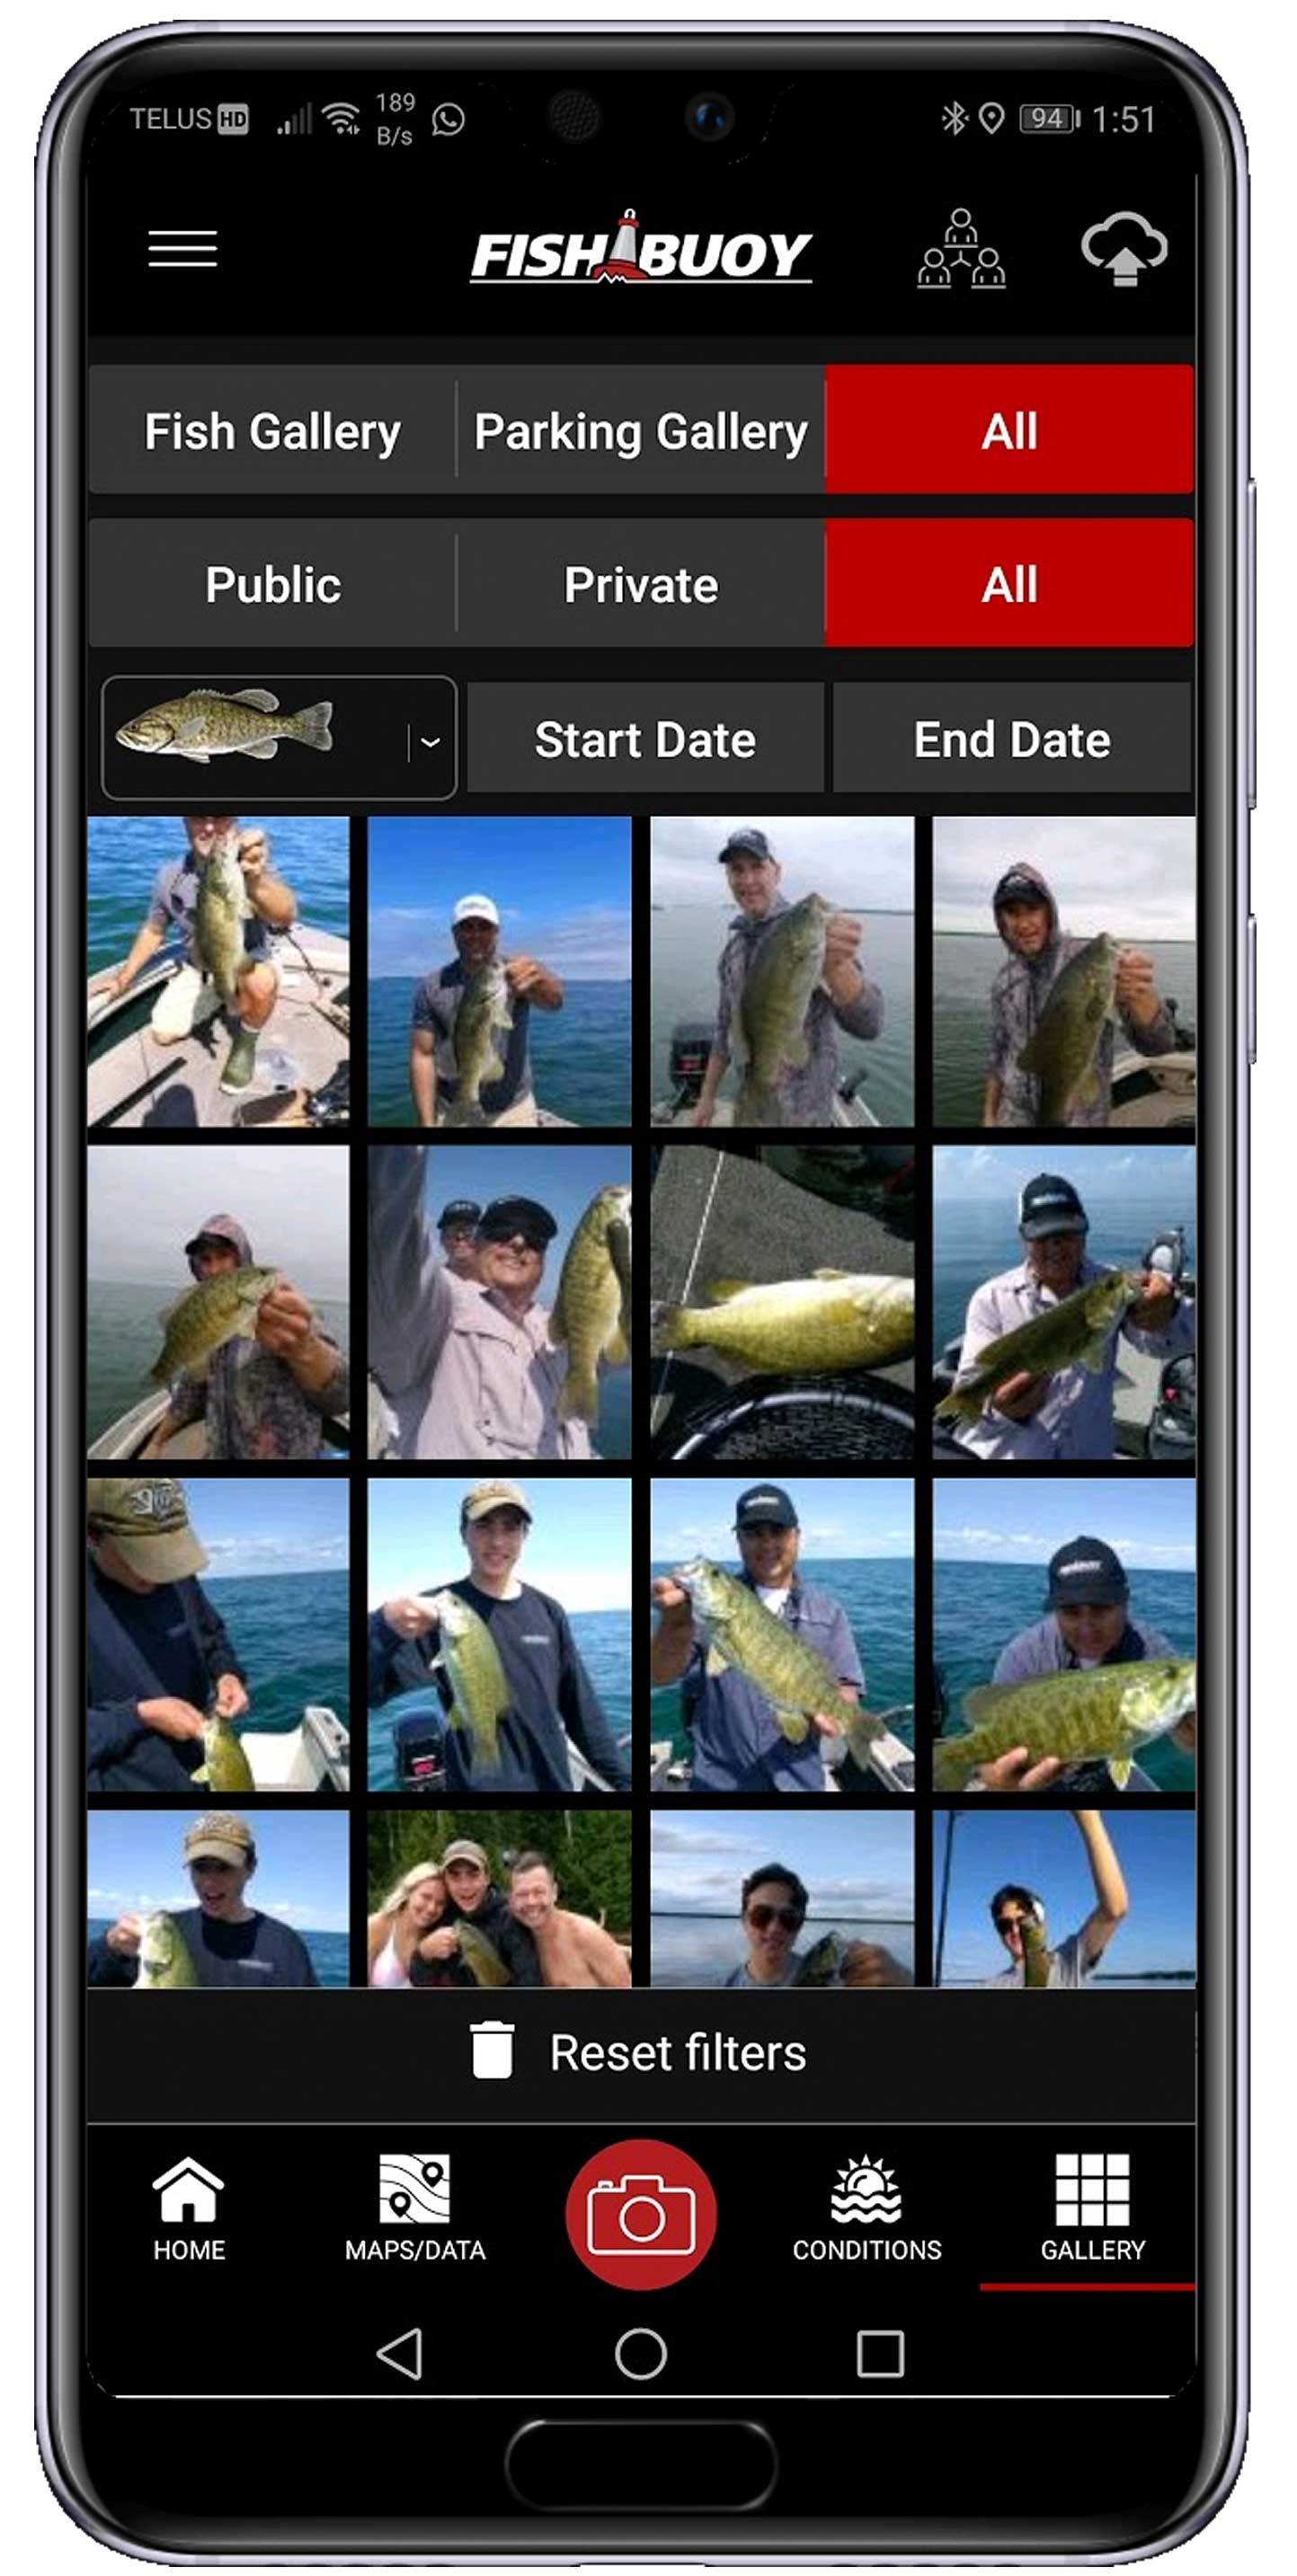 Manage and control your fishing history in one place!